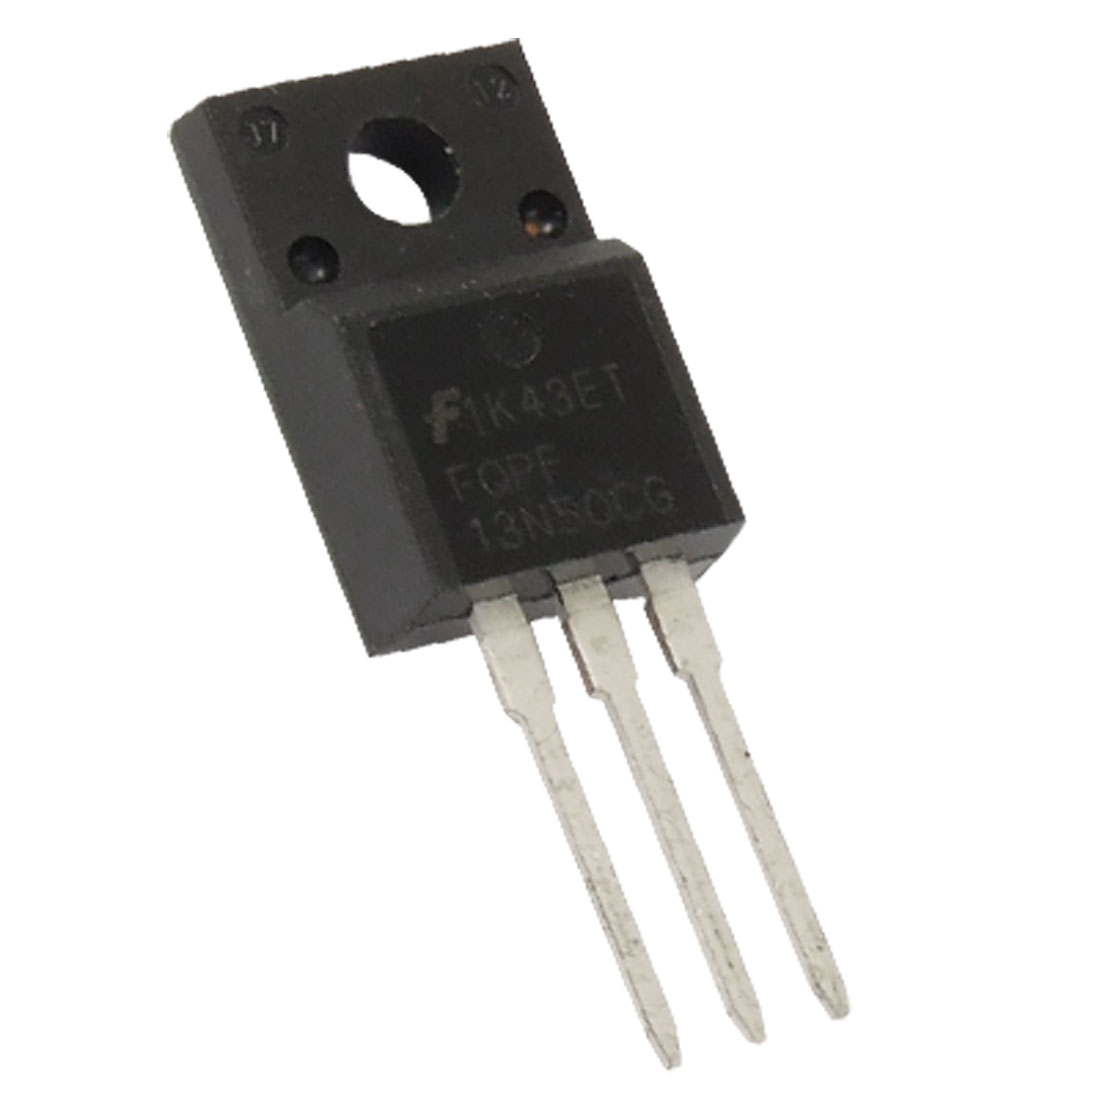 FQPF13N50C 13A 500V Fast Switching N-Channel Power MOSFET